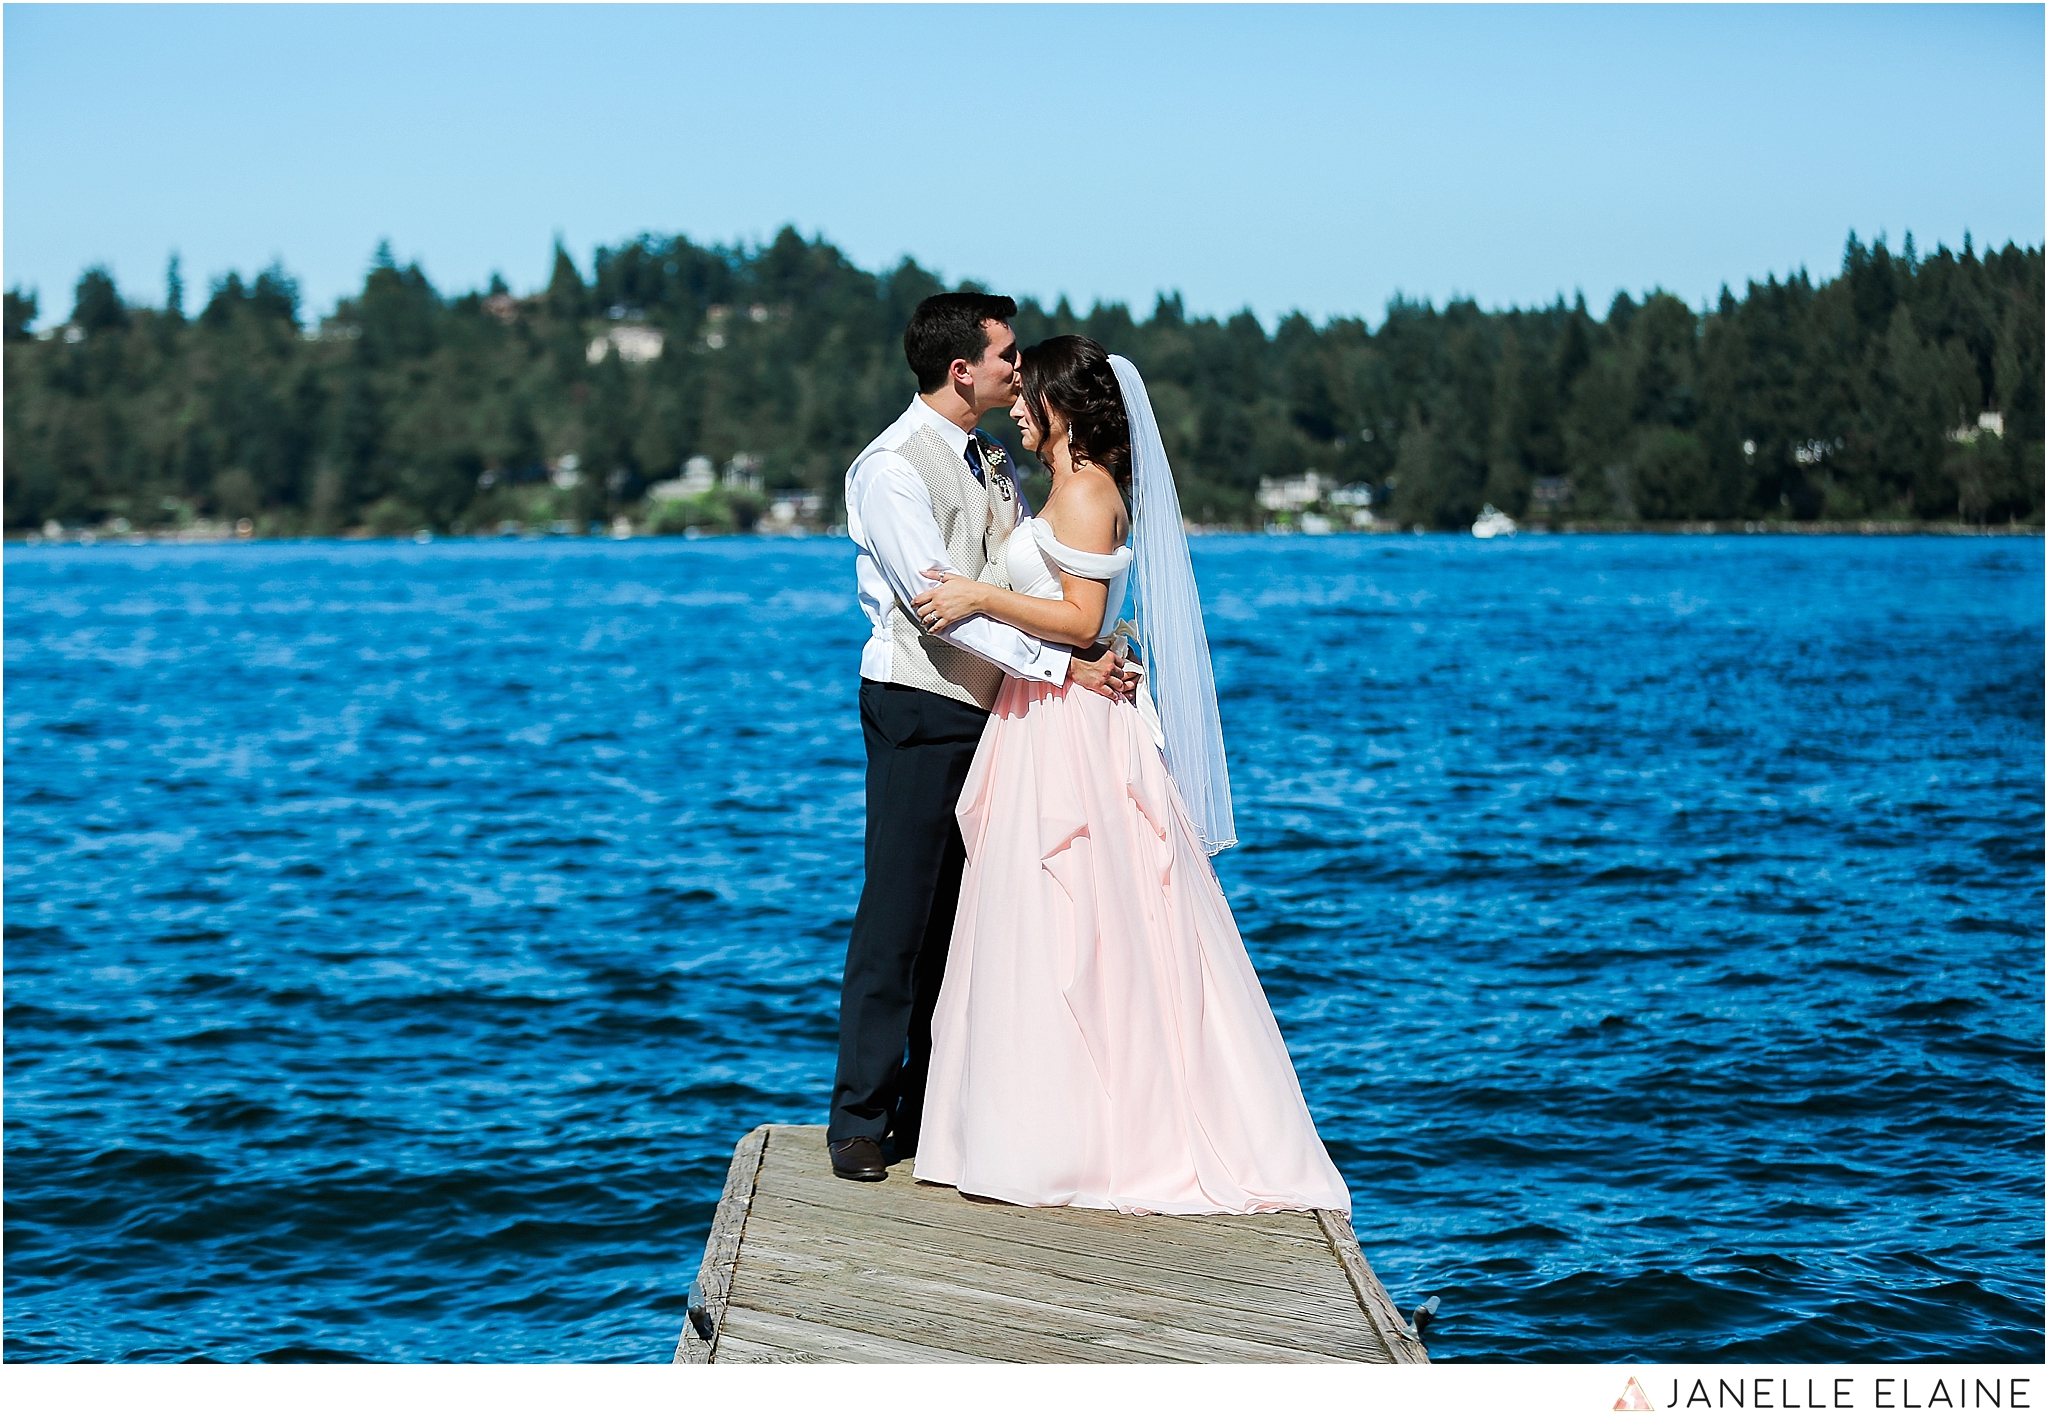 janelle elaine photography-jimmynicole-luther burbank park-seattle-wedding-125.jpg